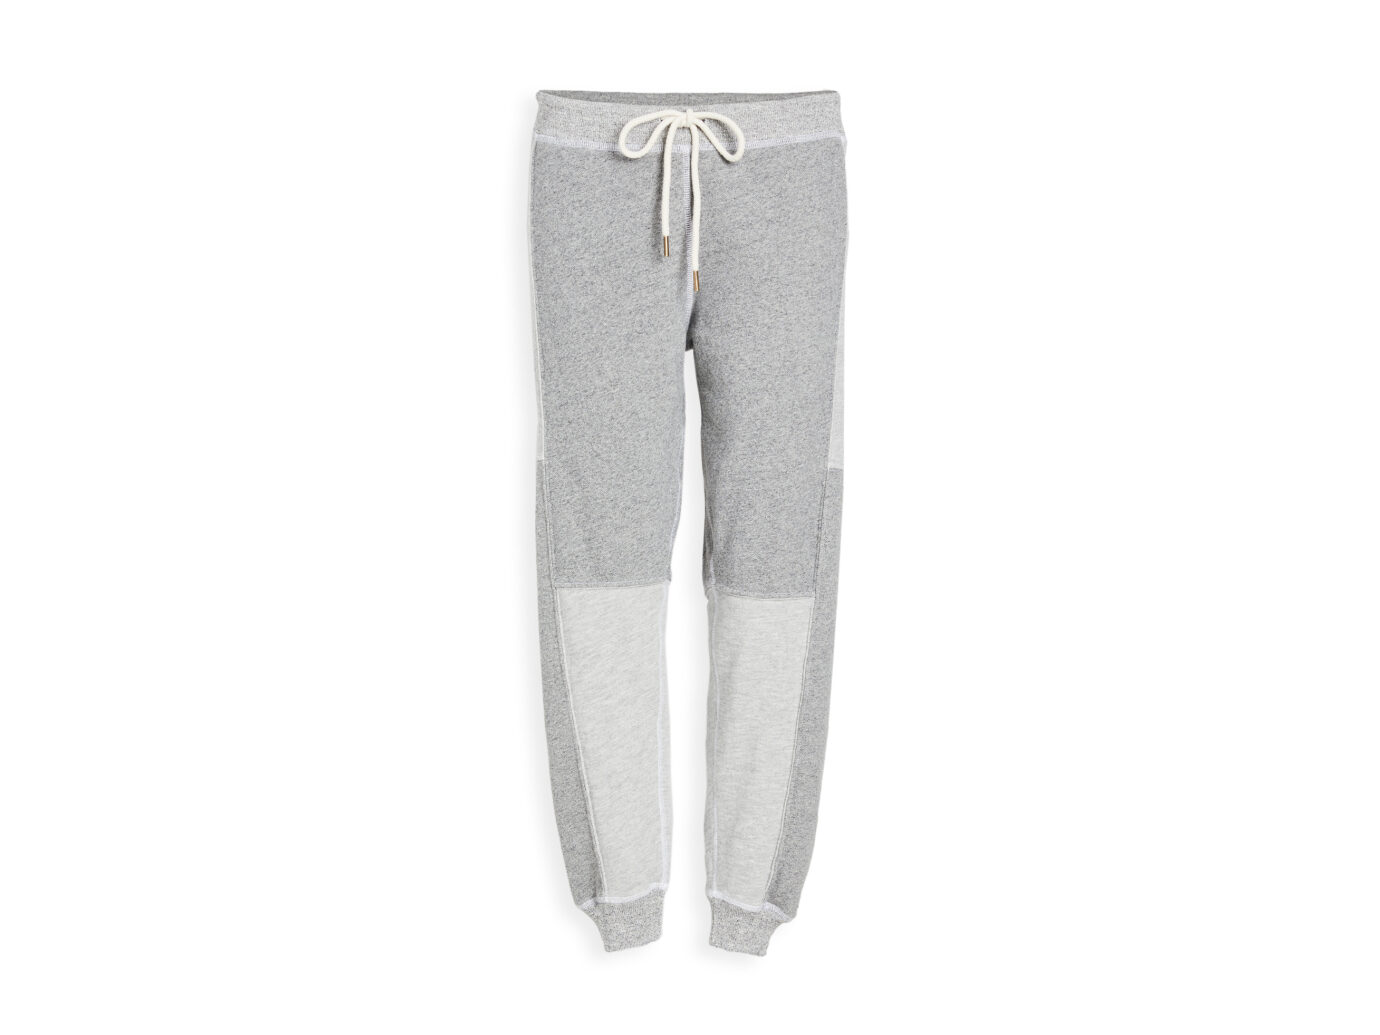 THE GREAT. Patchwork Cropped Sweatpants